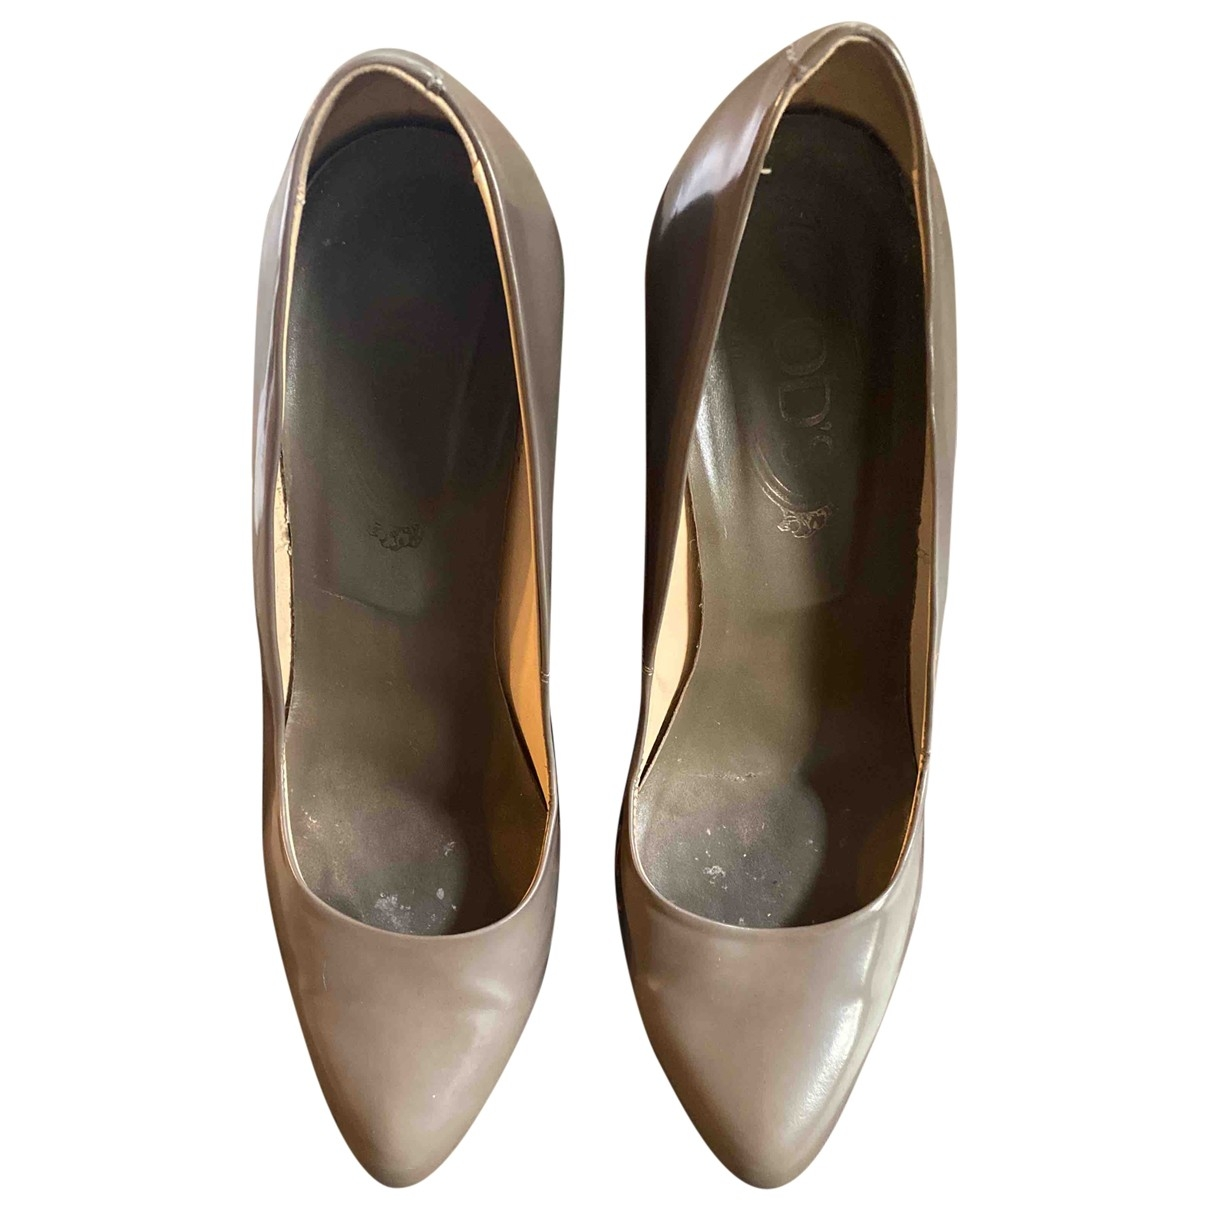 Tod's \N Grey Patent leather Heels for Women 39 EU